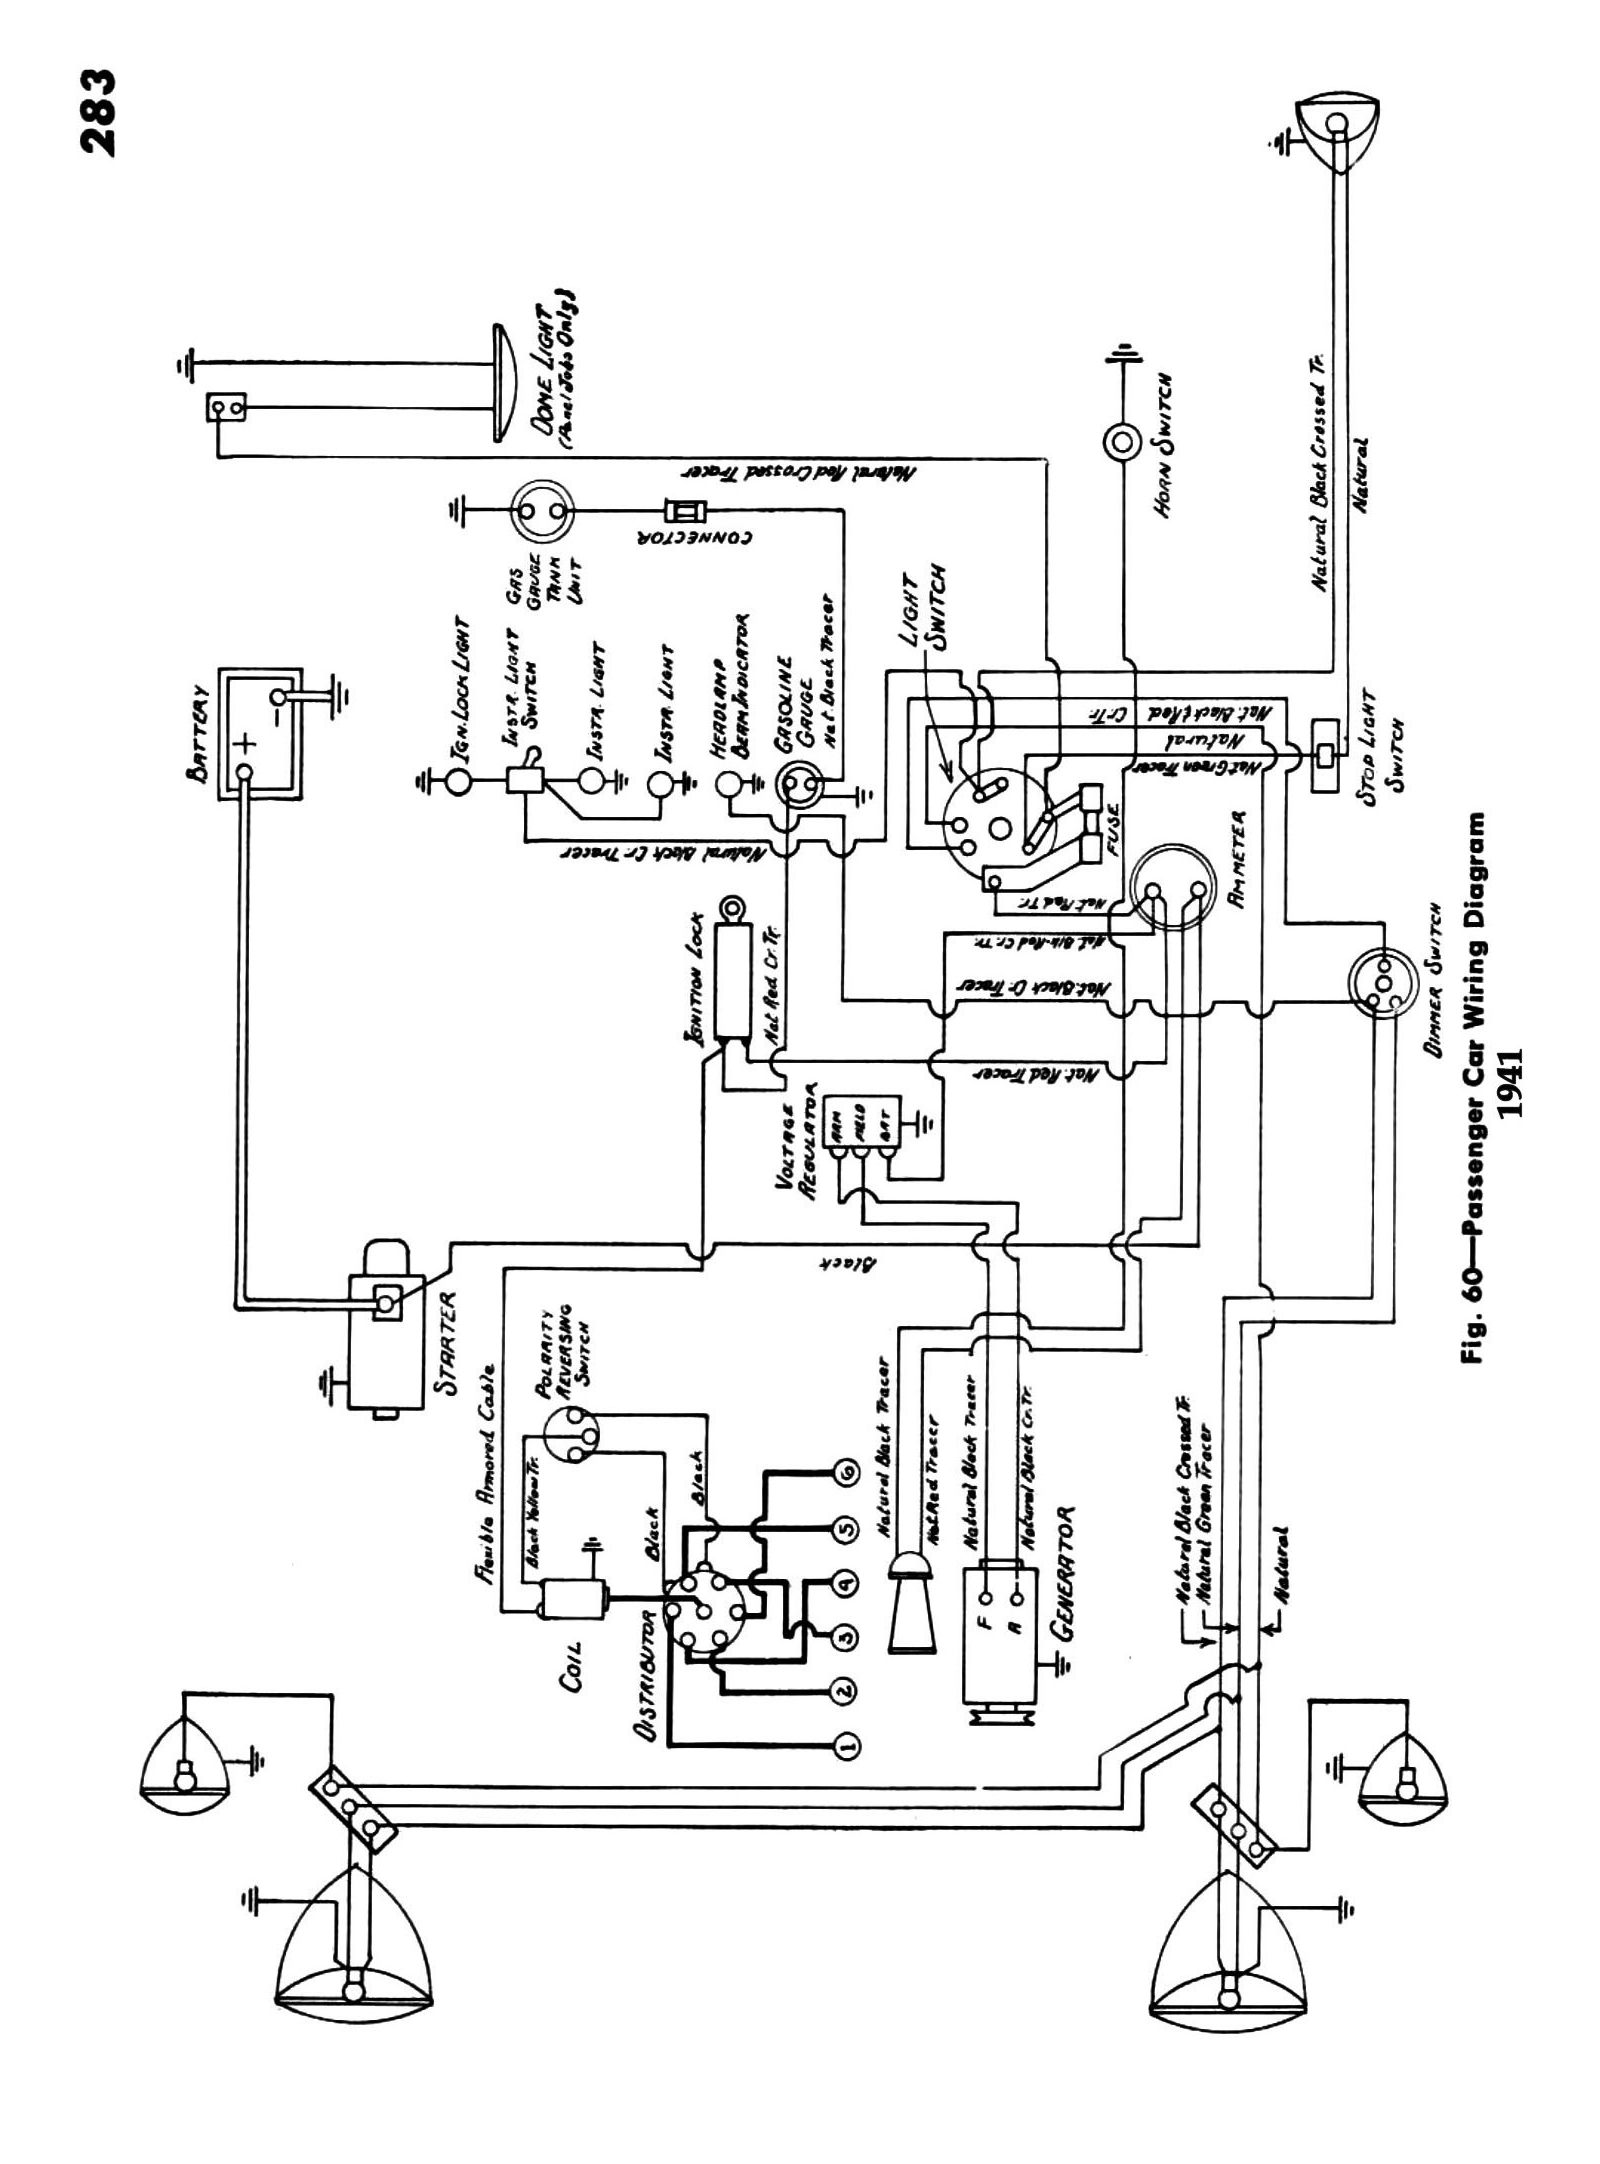 studebaker wiring diagrams with Wiring on Eaton Fuller Air Line Diagram likewise Ch ion Home Wiring Diagram moreover Wiring in addition 1959 Edsel Power Window Wiring Diagram as well 1964 Chevy Impala 283 Wiring Diagram.